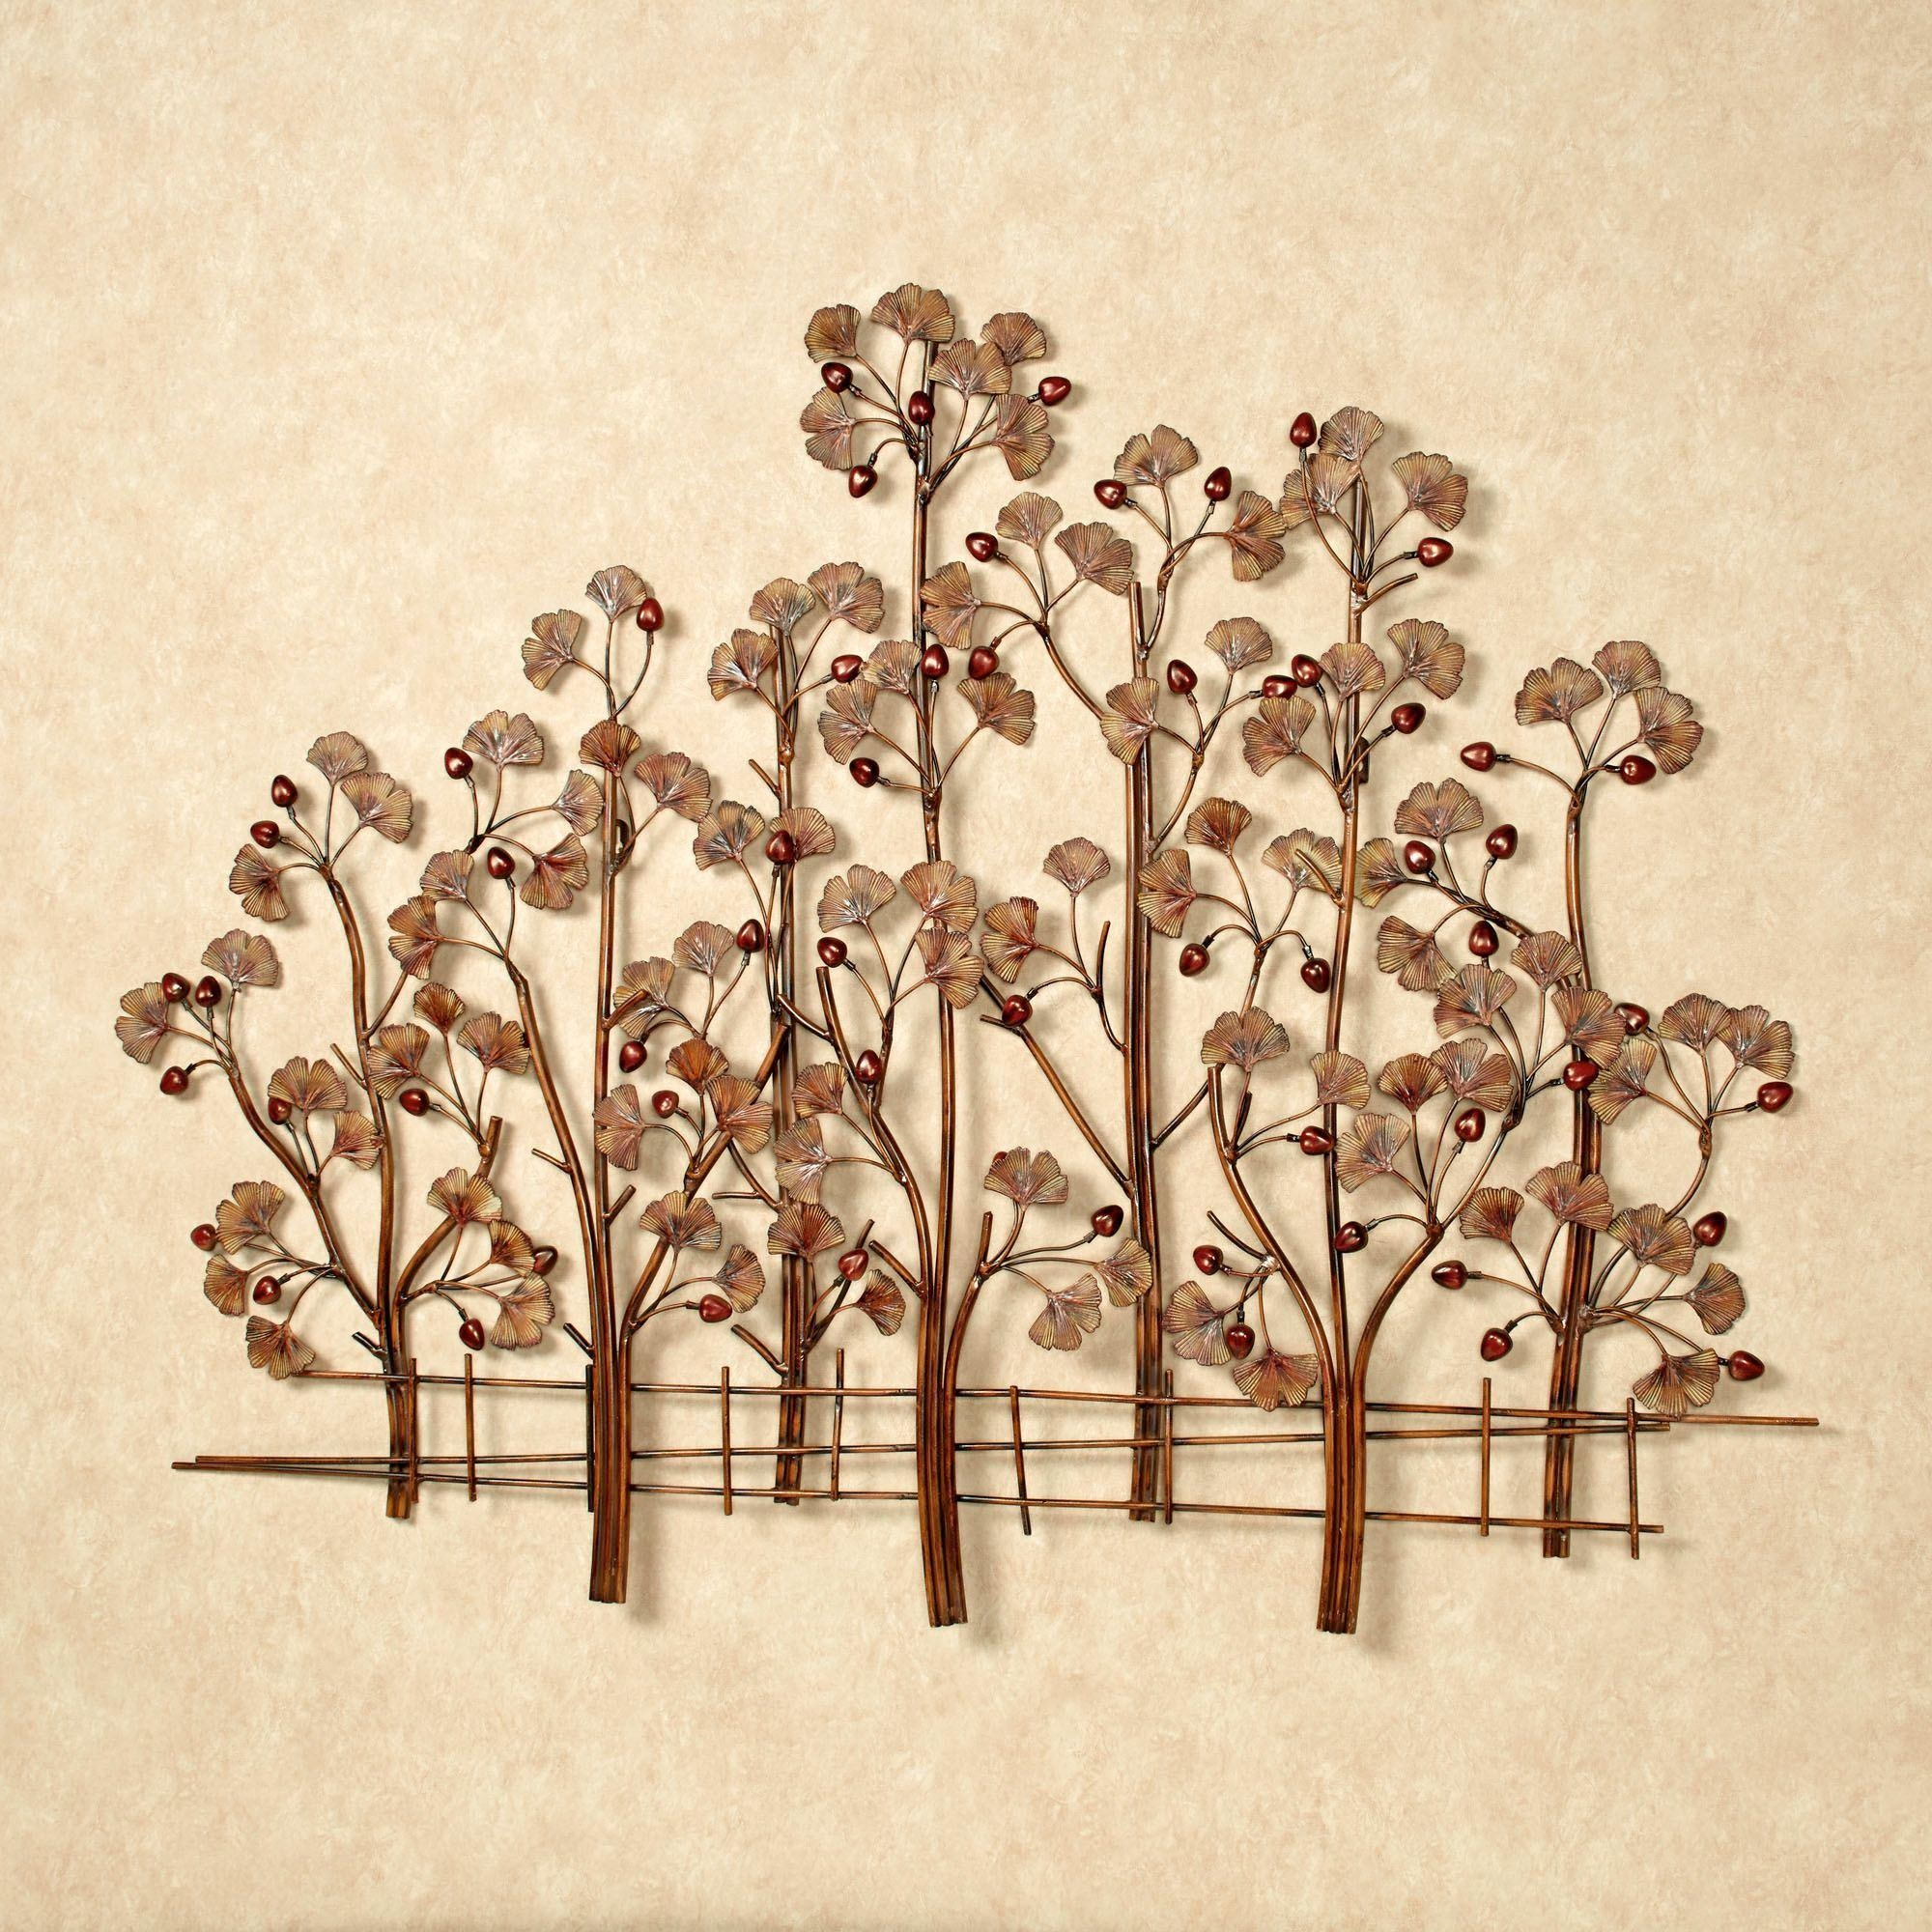 Ginkgo Tree Metal Wall Sculpture with regard to Tree Wall Art Sculpture